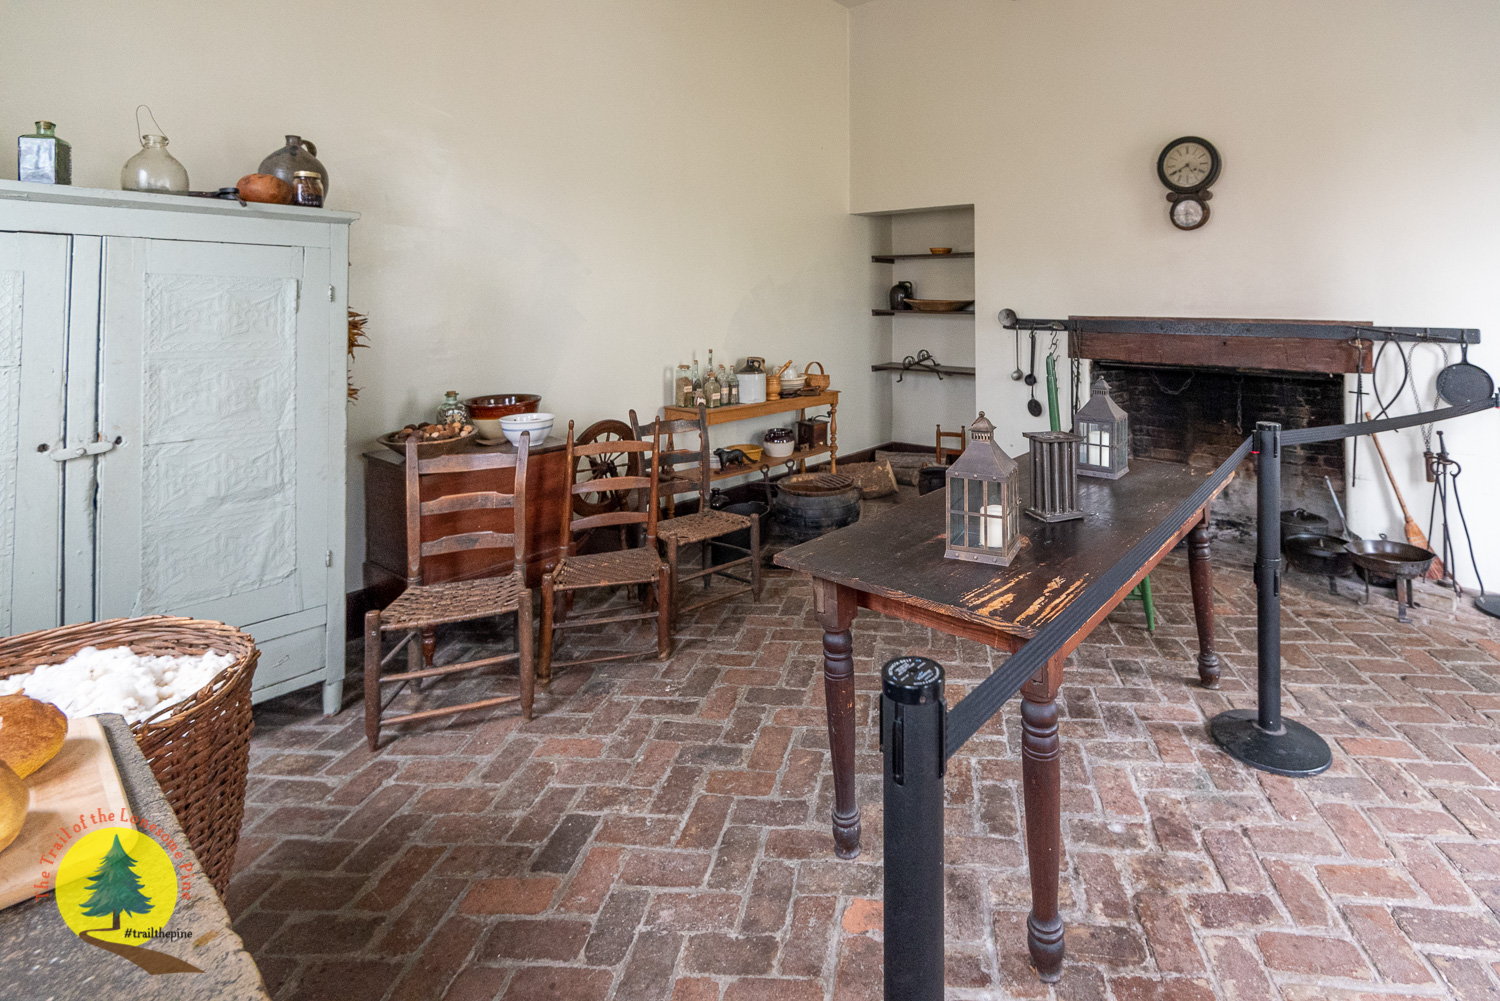 Interior of the kitchen with furnishings of the time